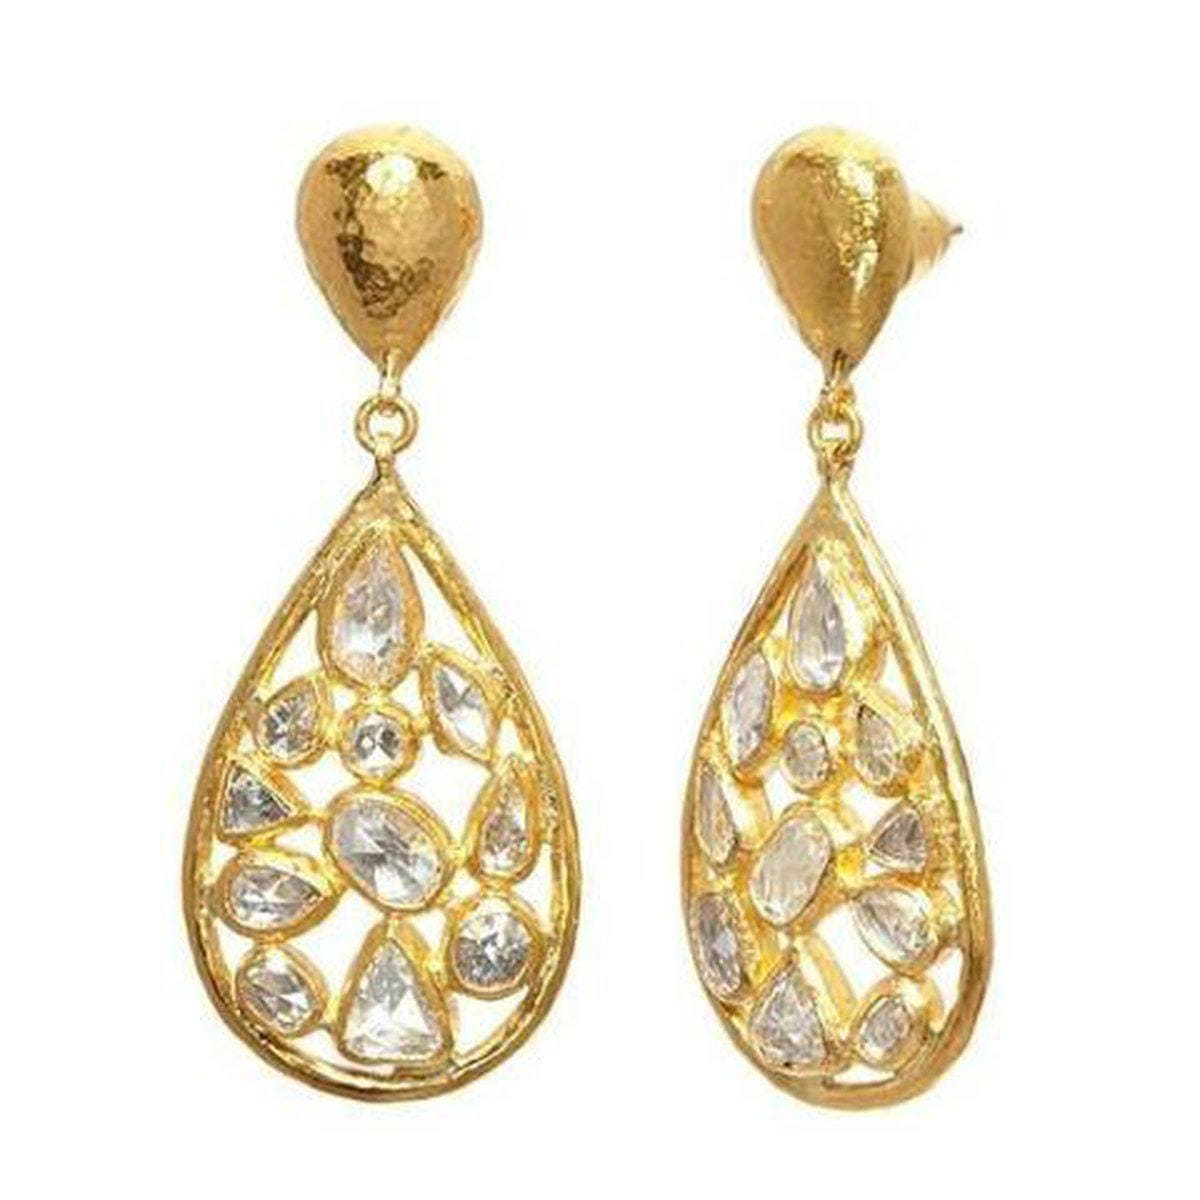 Pointelle 24K Gold White Diamond Earrings - E-U23741-DI-GURHAN-Renee Taylor Gallery